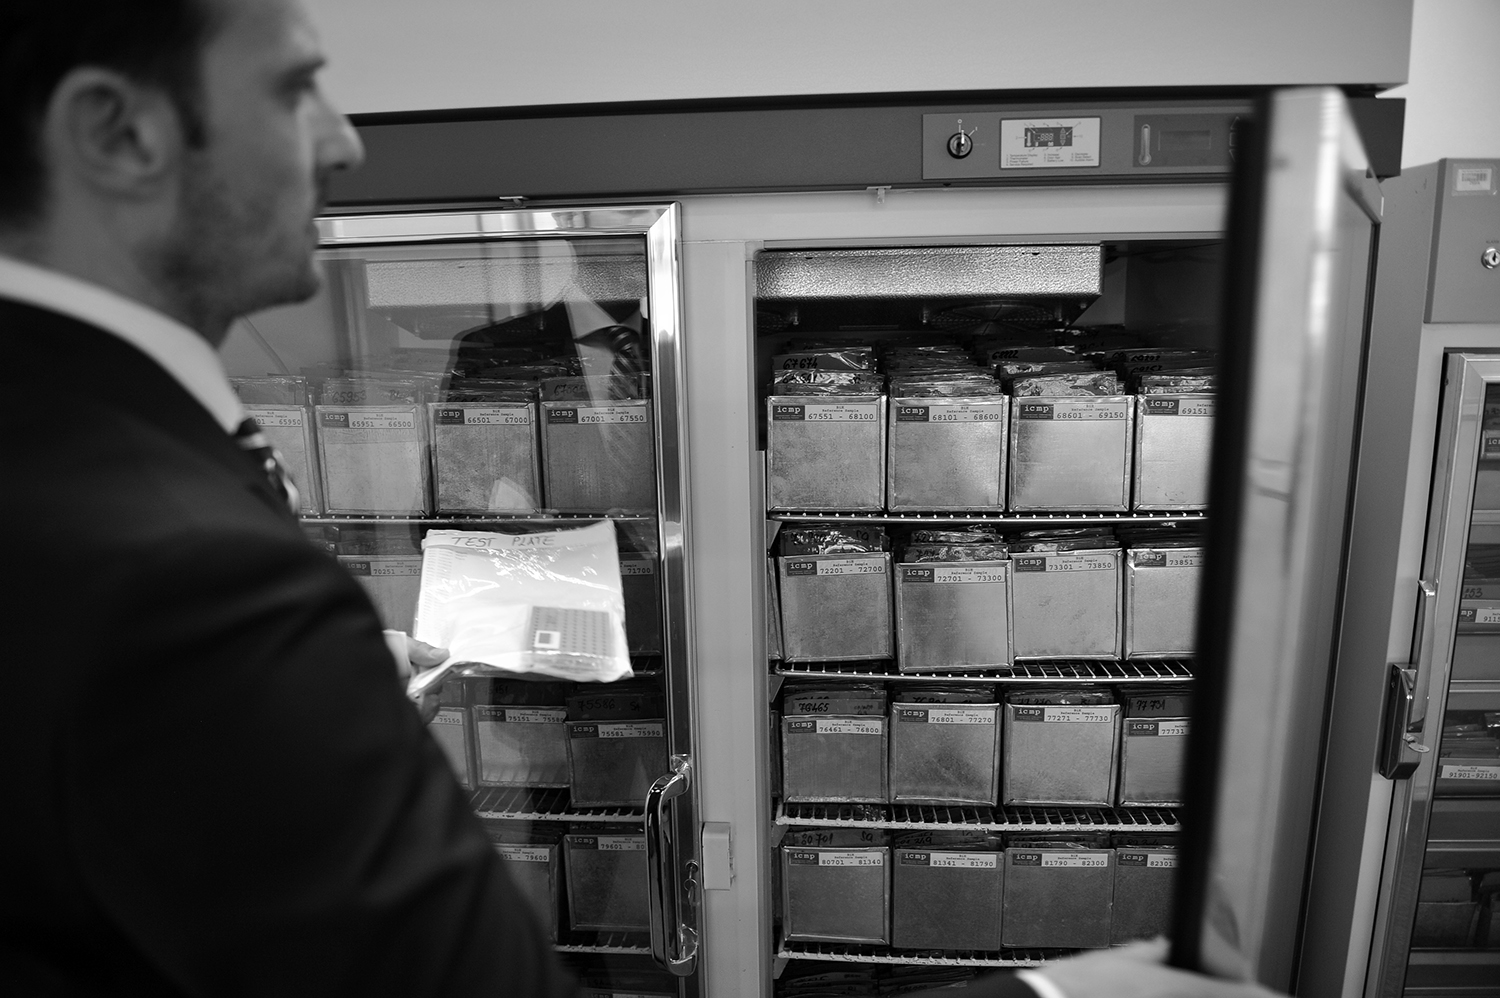 Edin Jasaragic, ICD Program Coordinator shows refrigerator with DNA samples at the ICMP Identification Coordination Division laboratory in Tuzla, Bosnia and Herzegovina. The lab is used to process samples for DNA testing and eventual matching between living relatives and deceased victims of the Bosnia war.